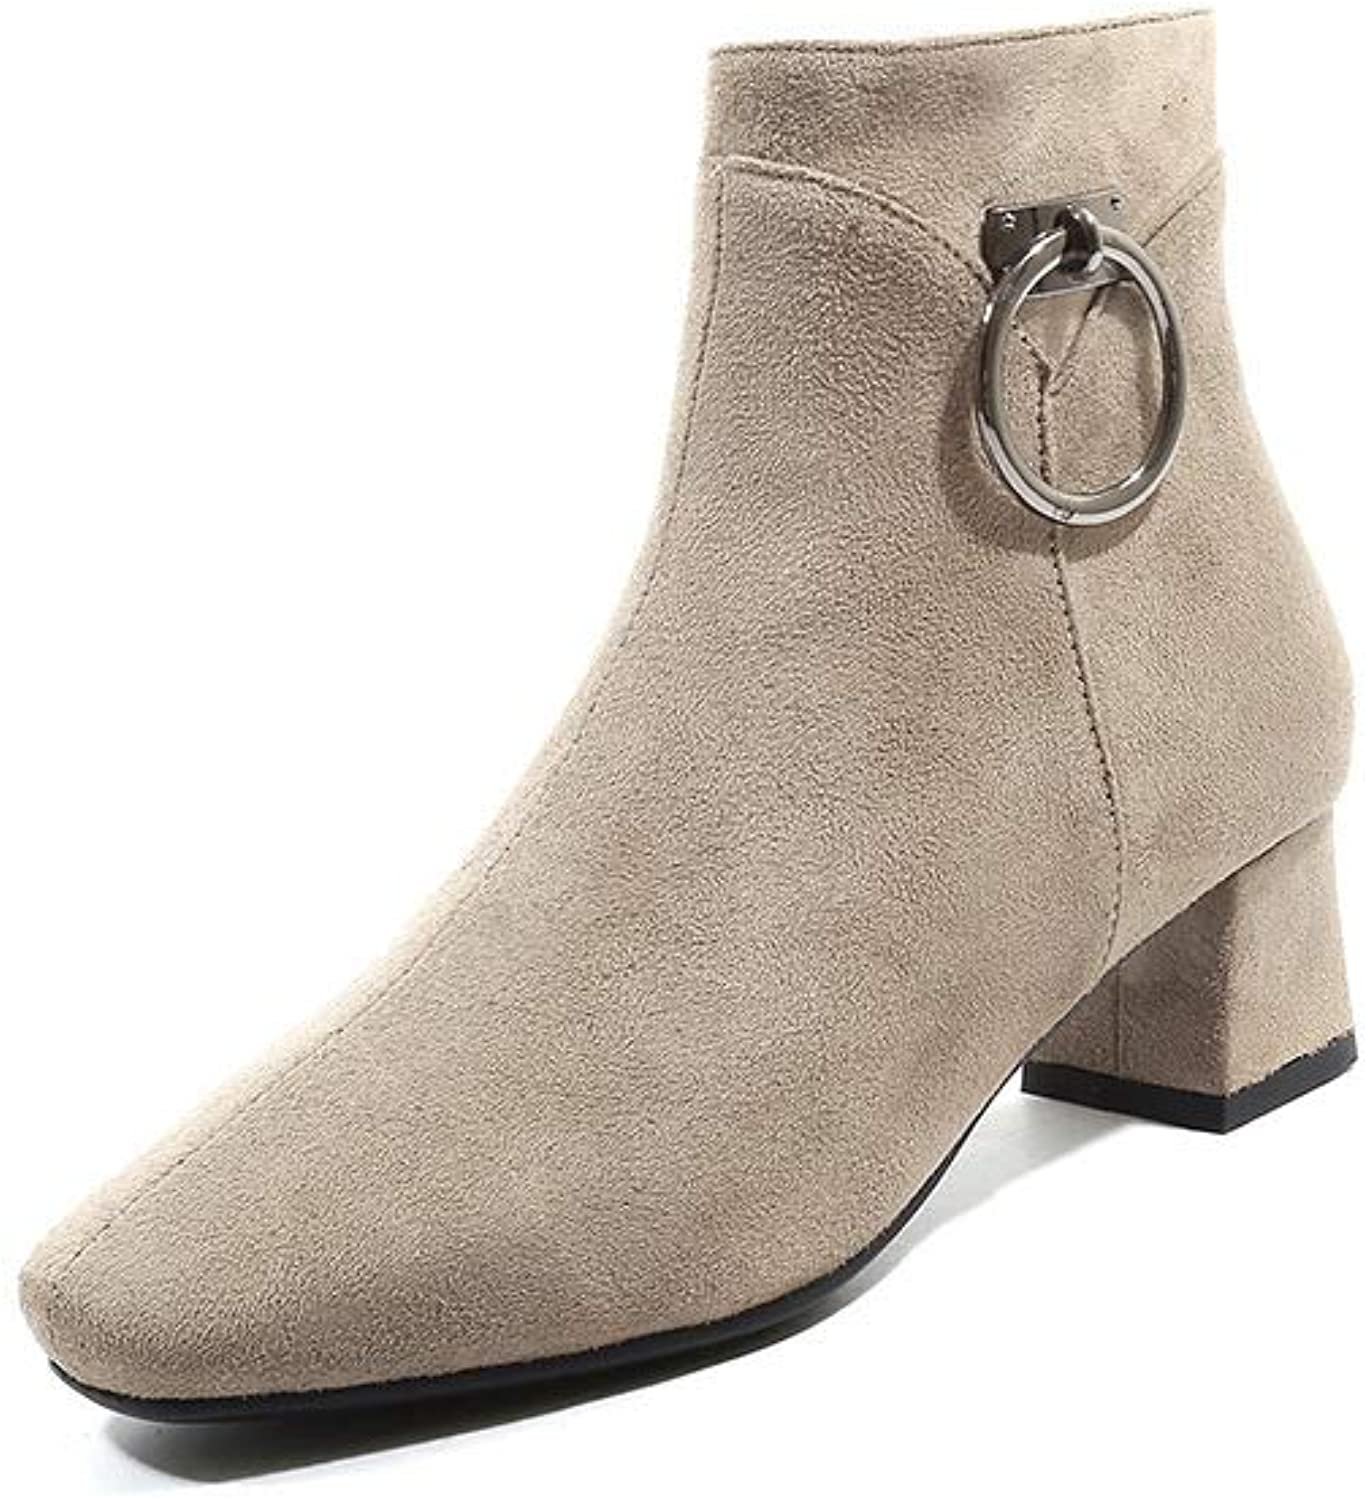 Women Suede Martin Boots 2018 Winter Square Head Fashion Ankle Boots Size 3343